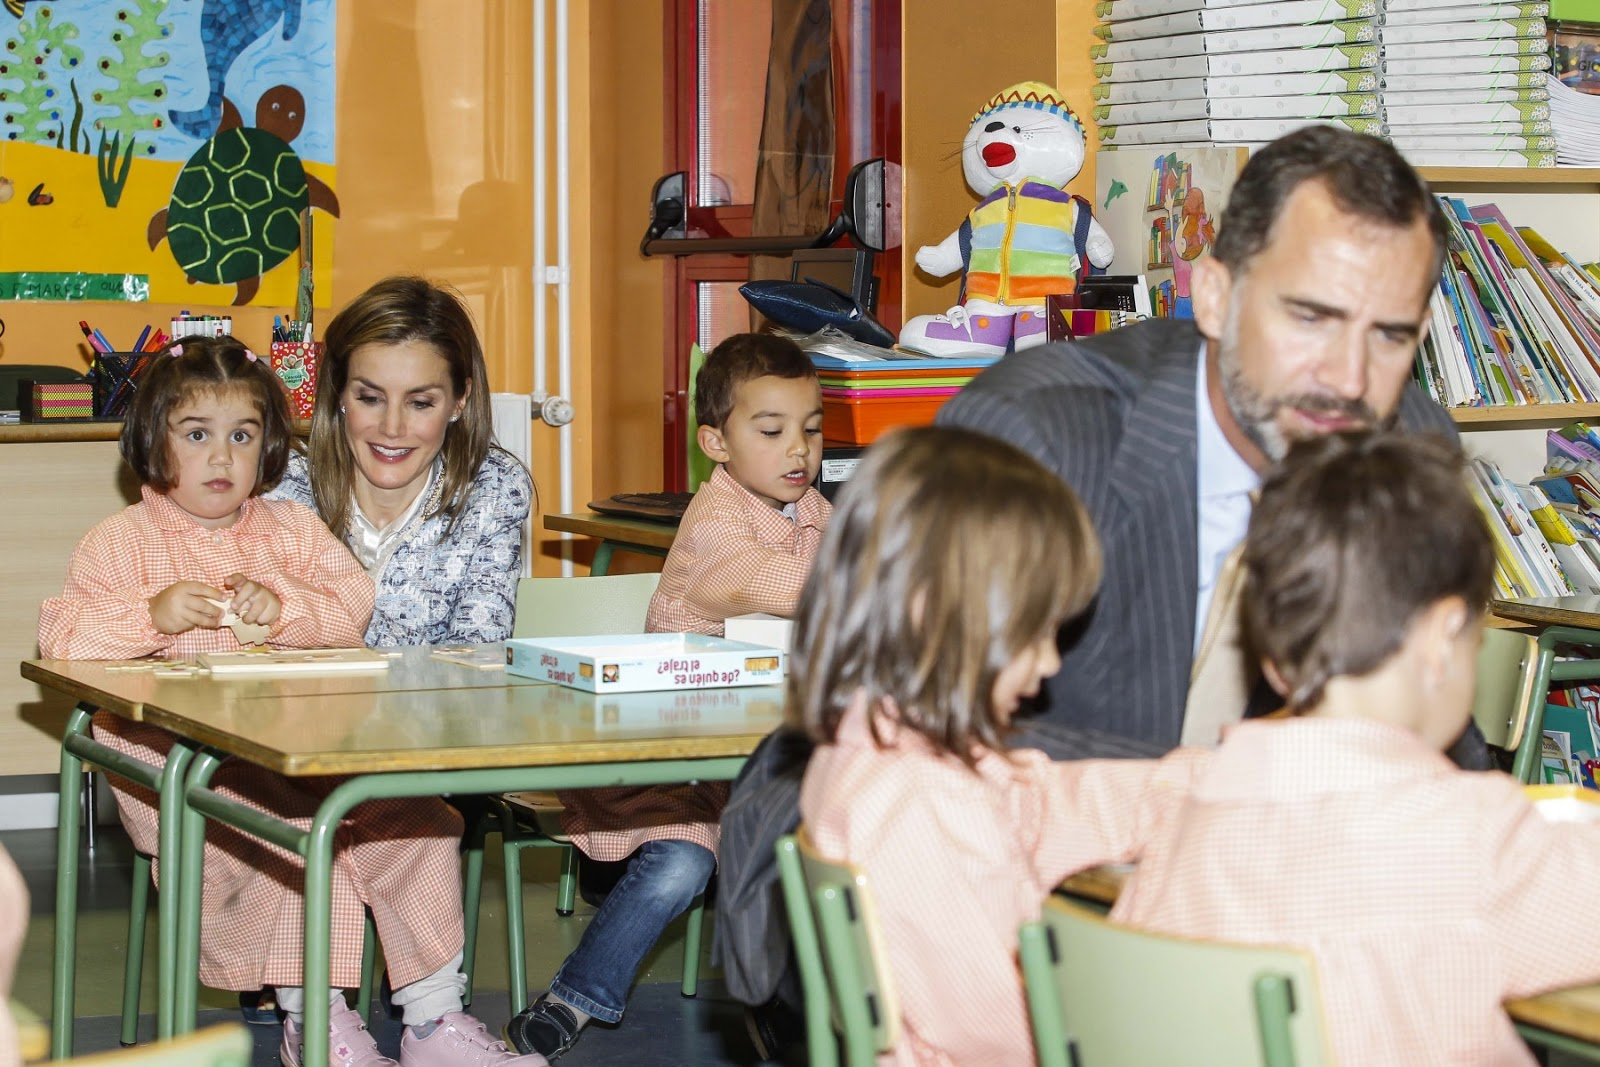 Both the 42-year-old Queen Letizia and her husband, King Felipe seemed equally happy to meet the children and took time to chat to them about their school work.